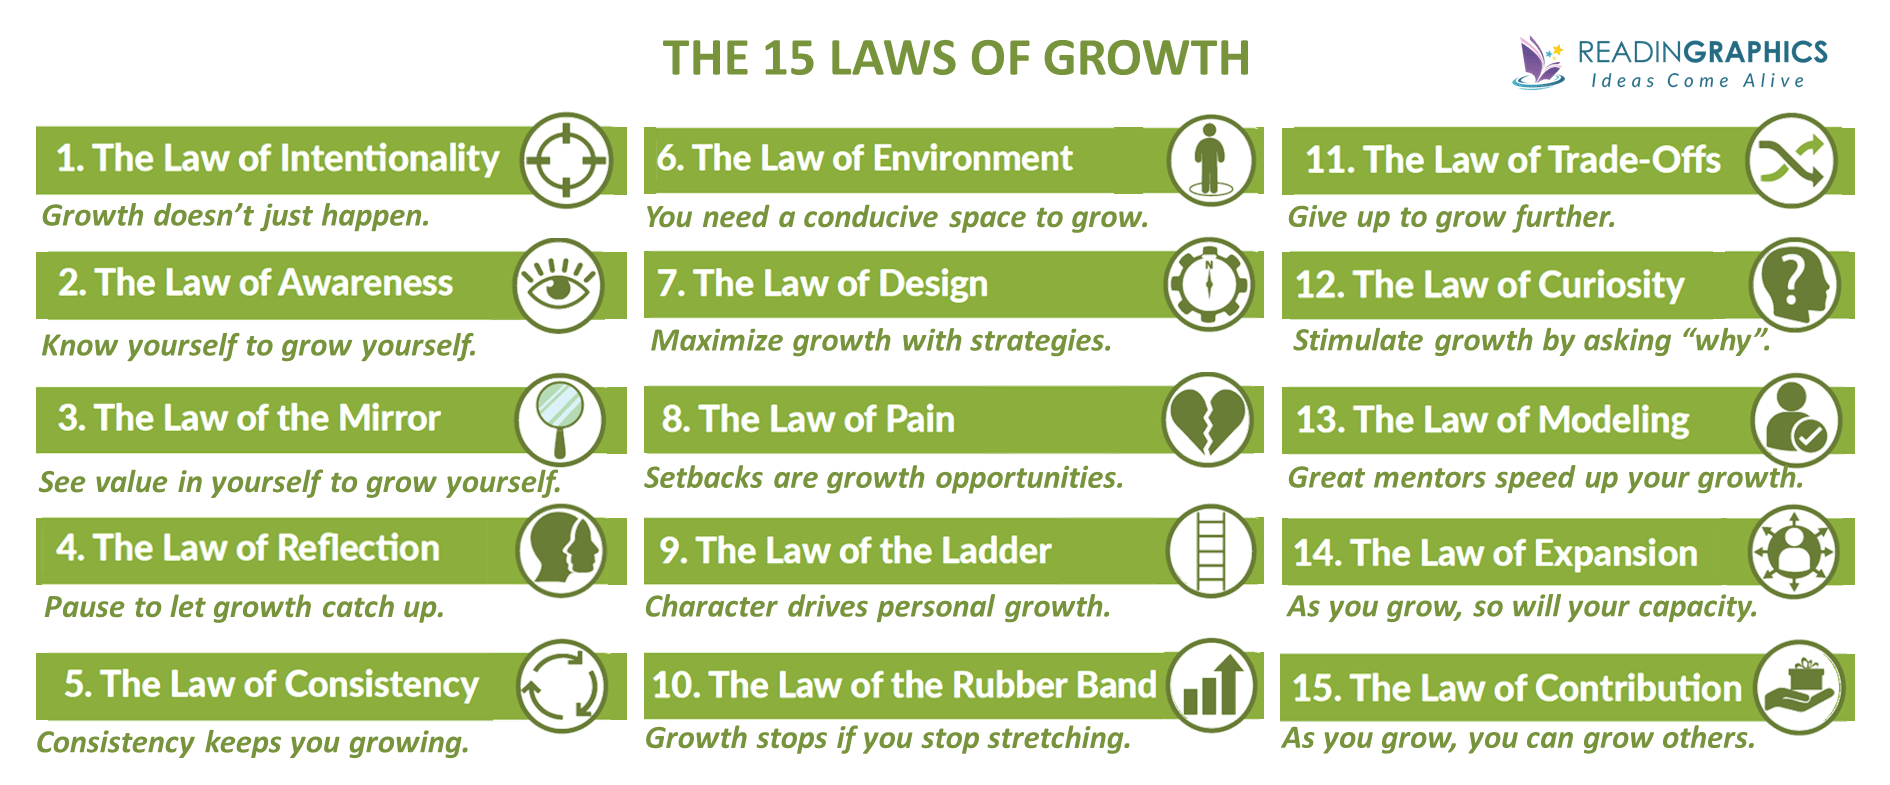 The 15 Invaluable Laws of Growth summary_overview of 15 laws